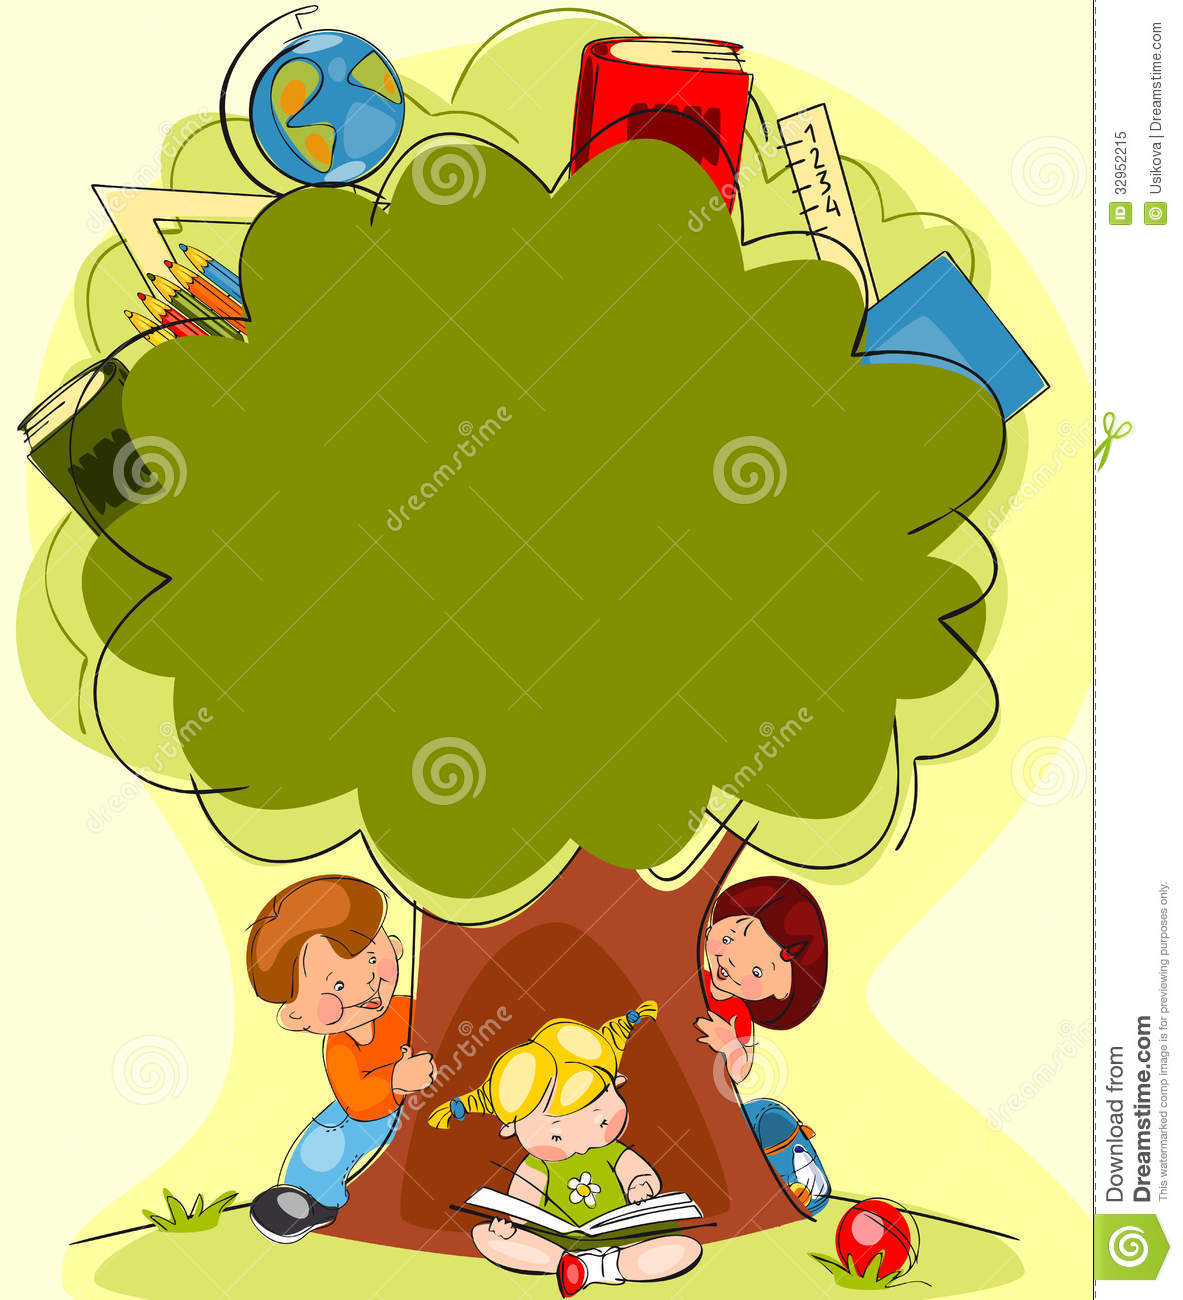 Tree Of Knowledge Royalty Free Stock Photo - Image: 32952215